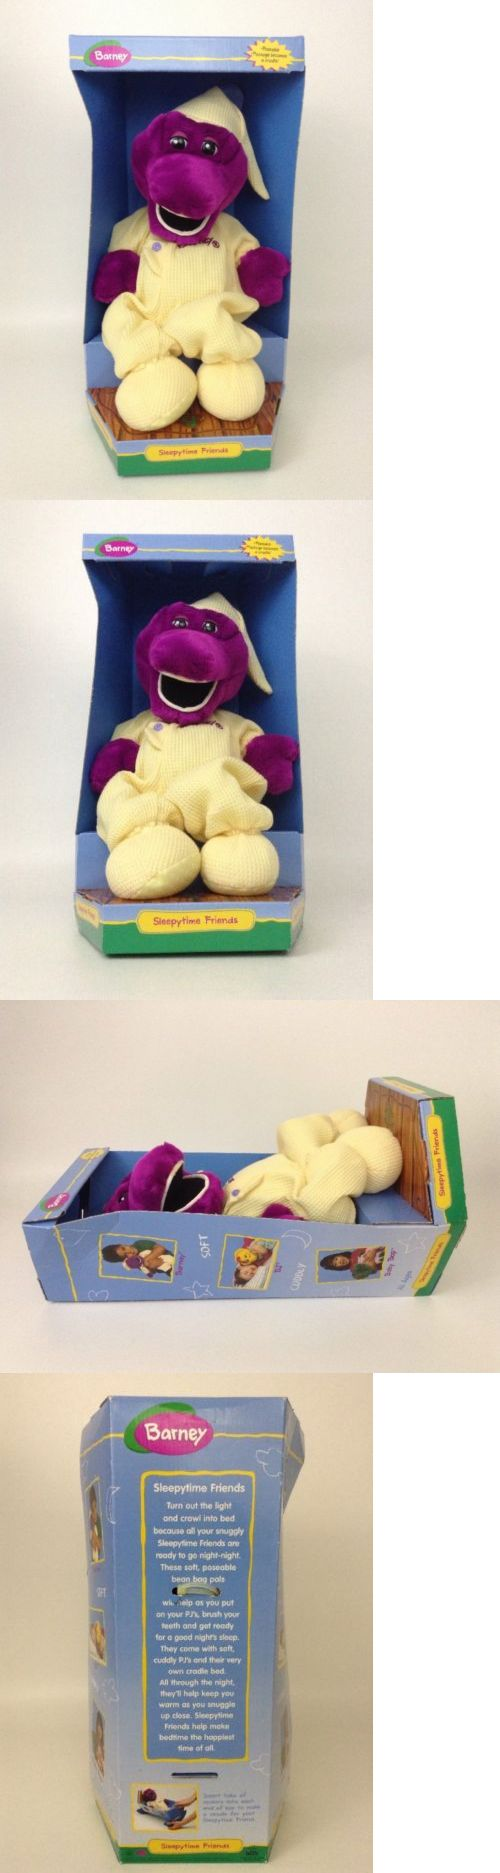 Barney 2625: Vintage 1998 Sleepy Time Friends Barney The Dinosaur Poseable W Package Cradle -> BUY IT NOW ONLY: $44.95 on eBay!